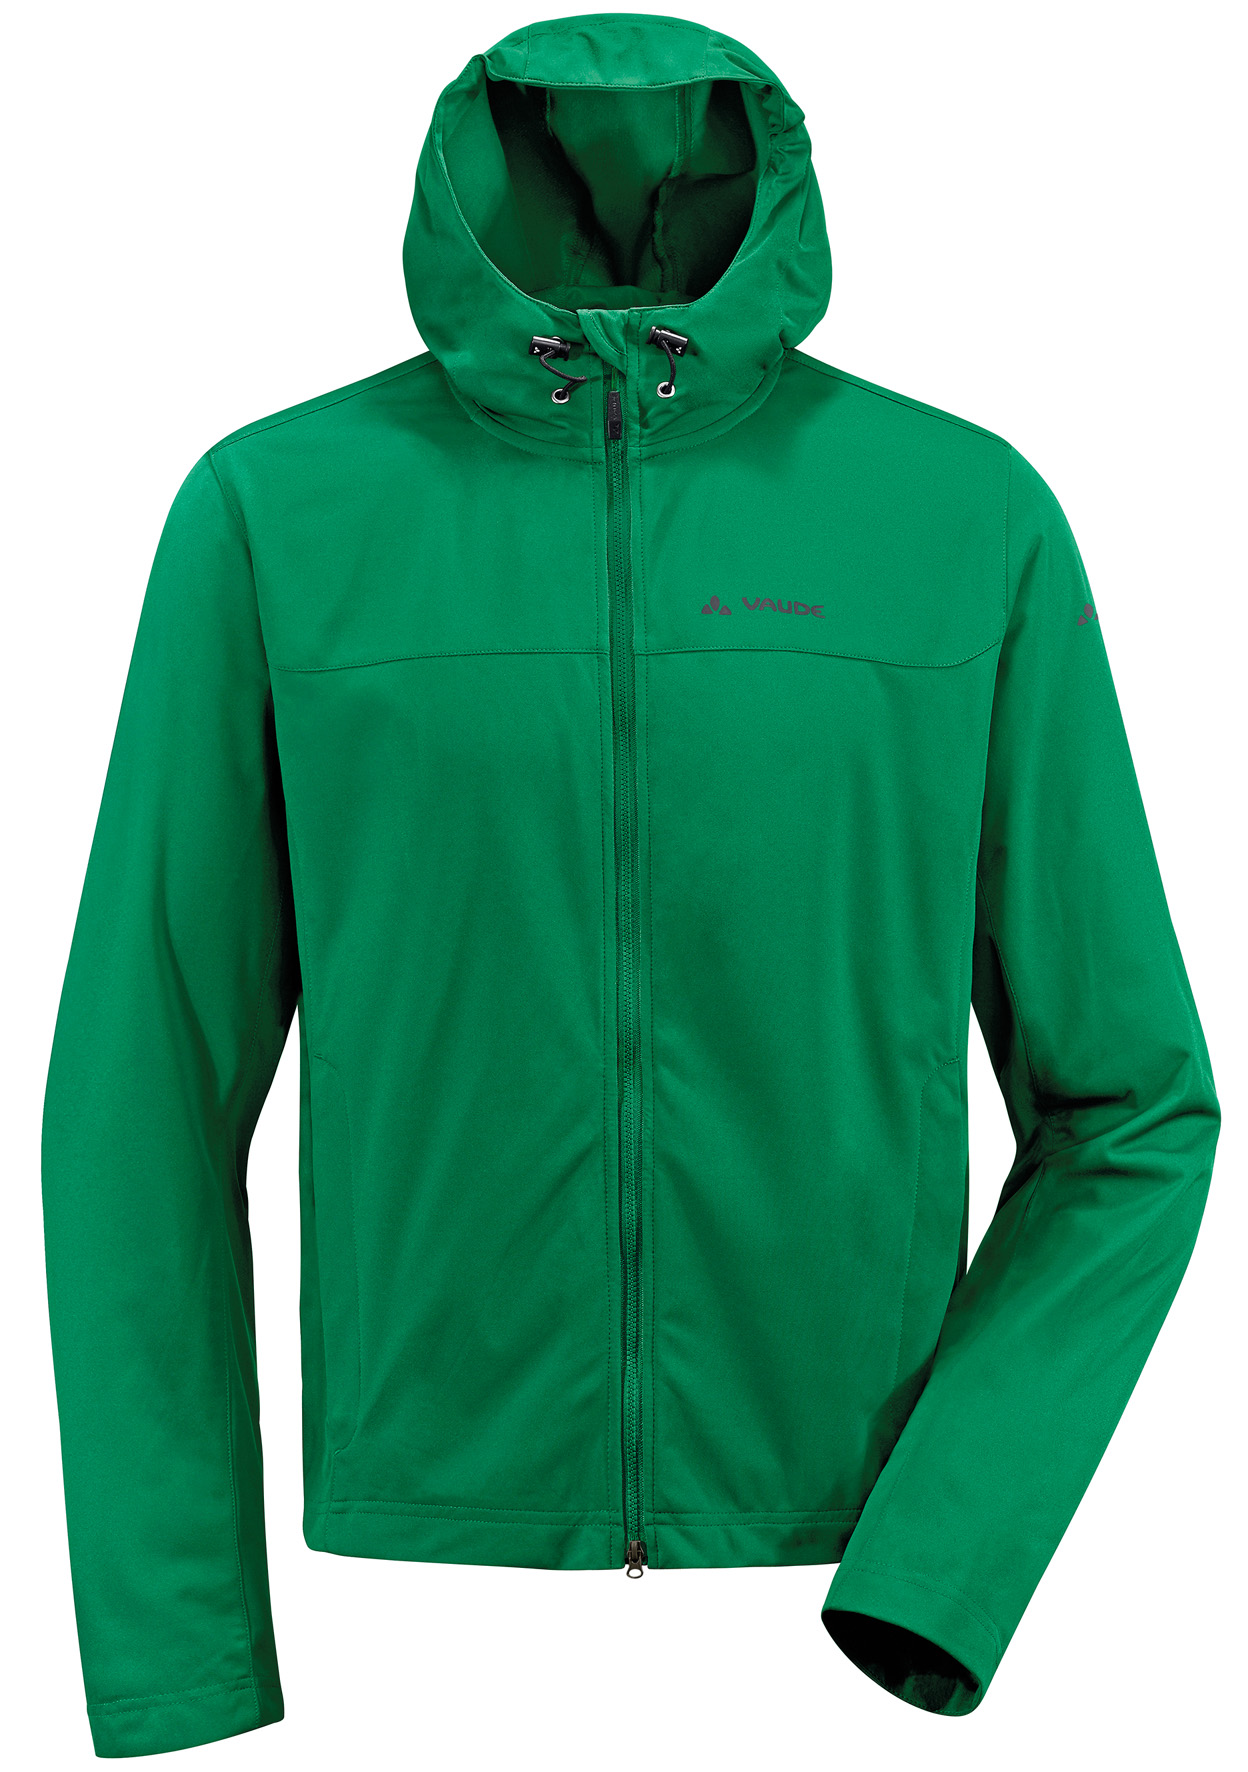 Men´s Taguna Softshell Jacket trefoil green Größe M - Men´s Taguna Softshell Jacket trefoil green Größe M